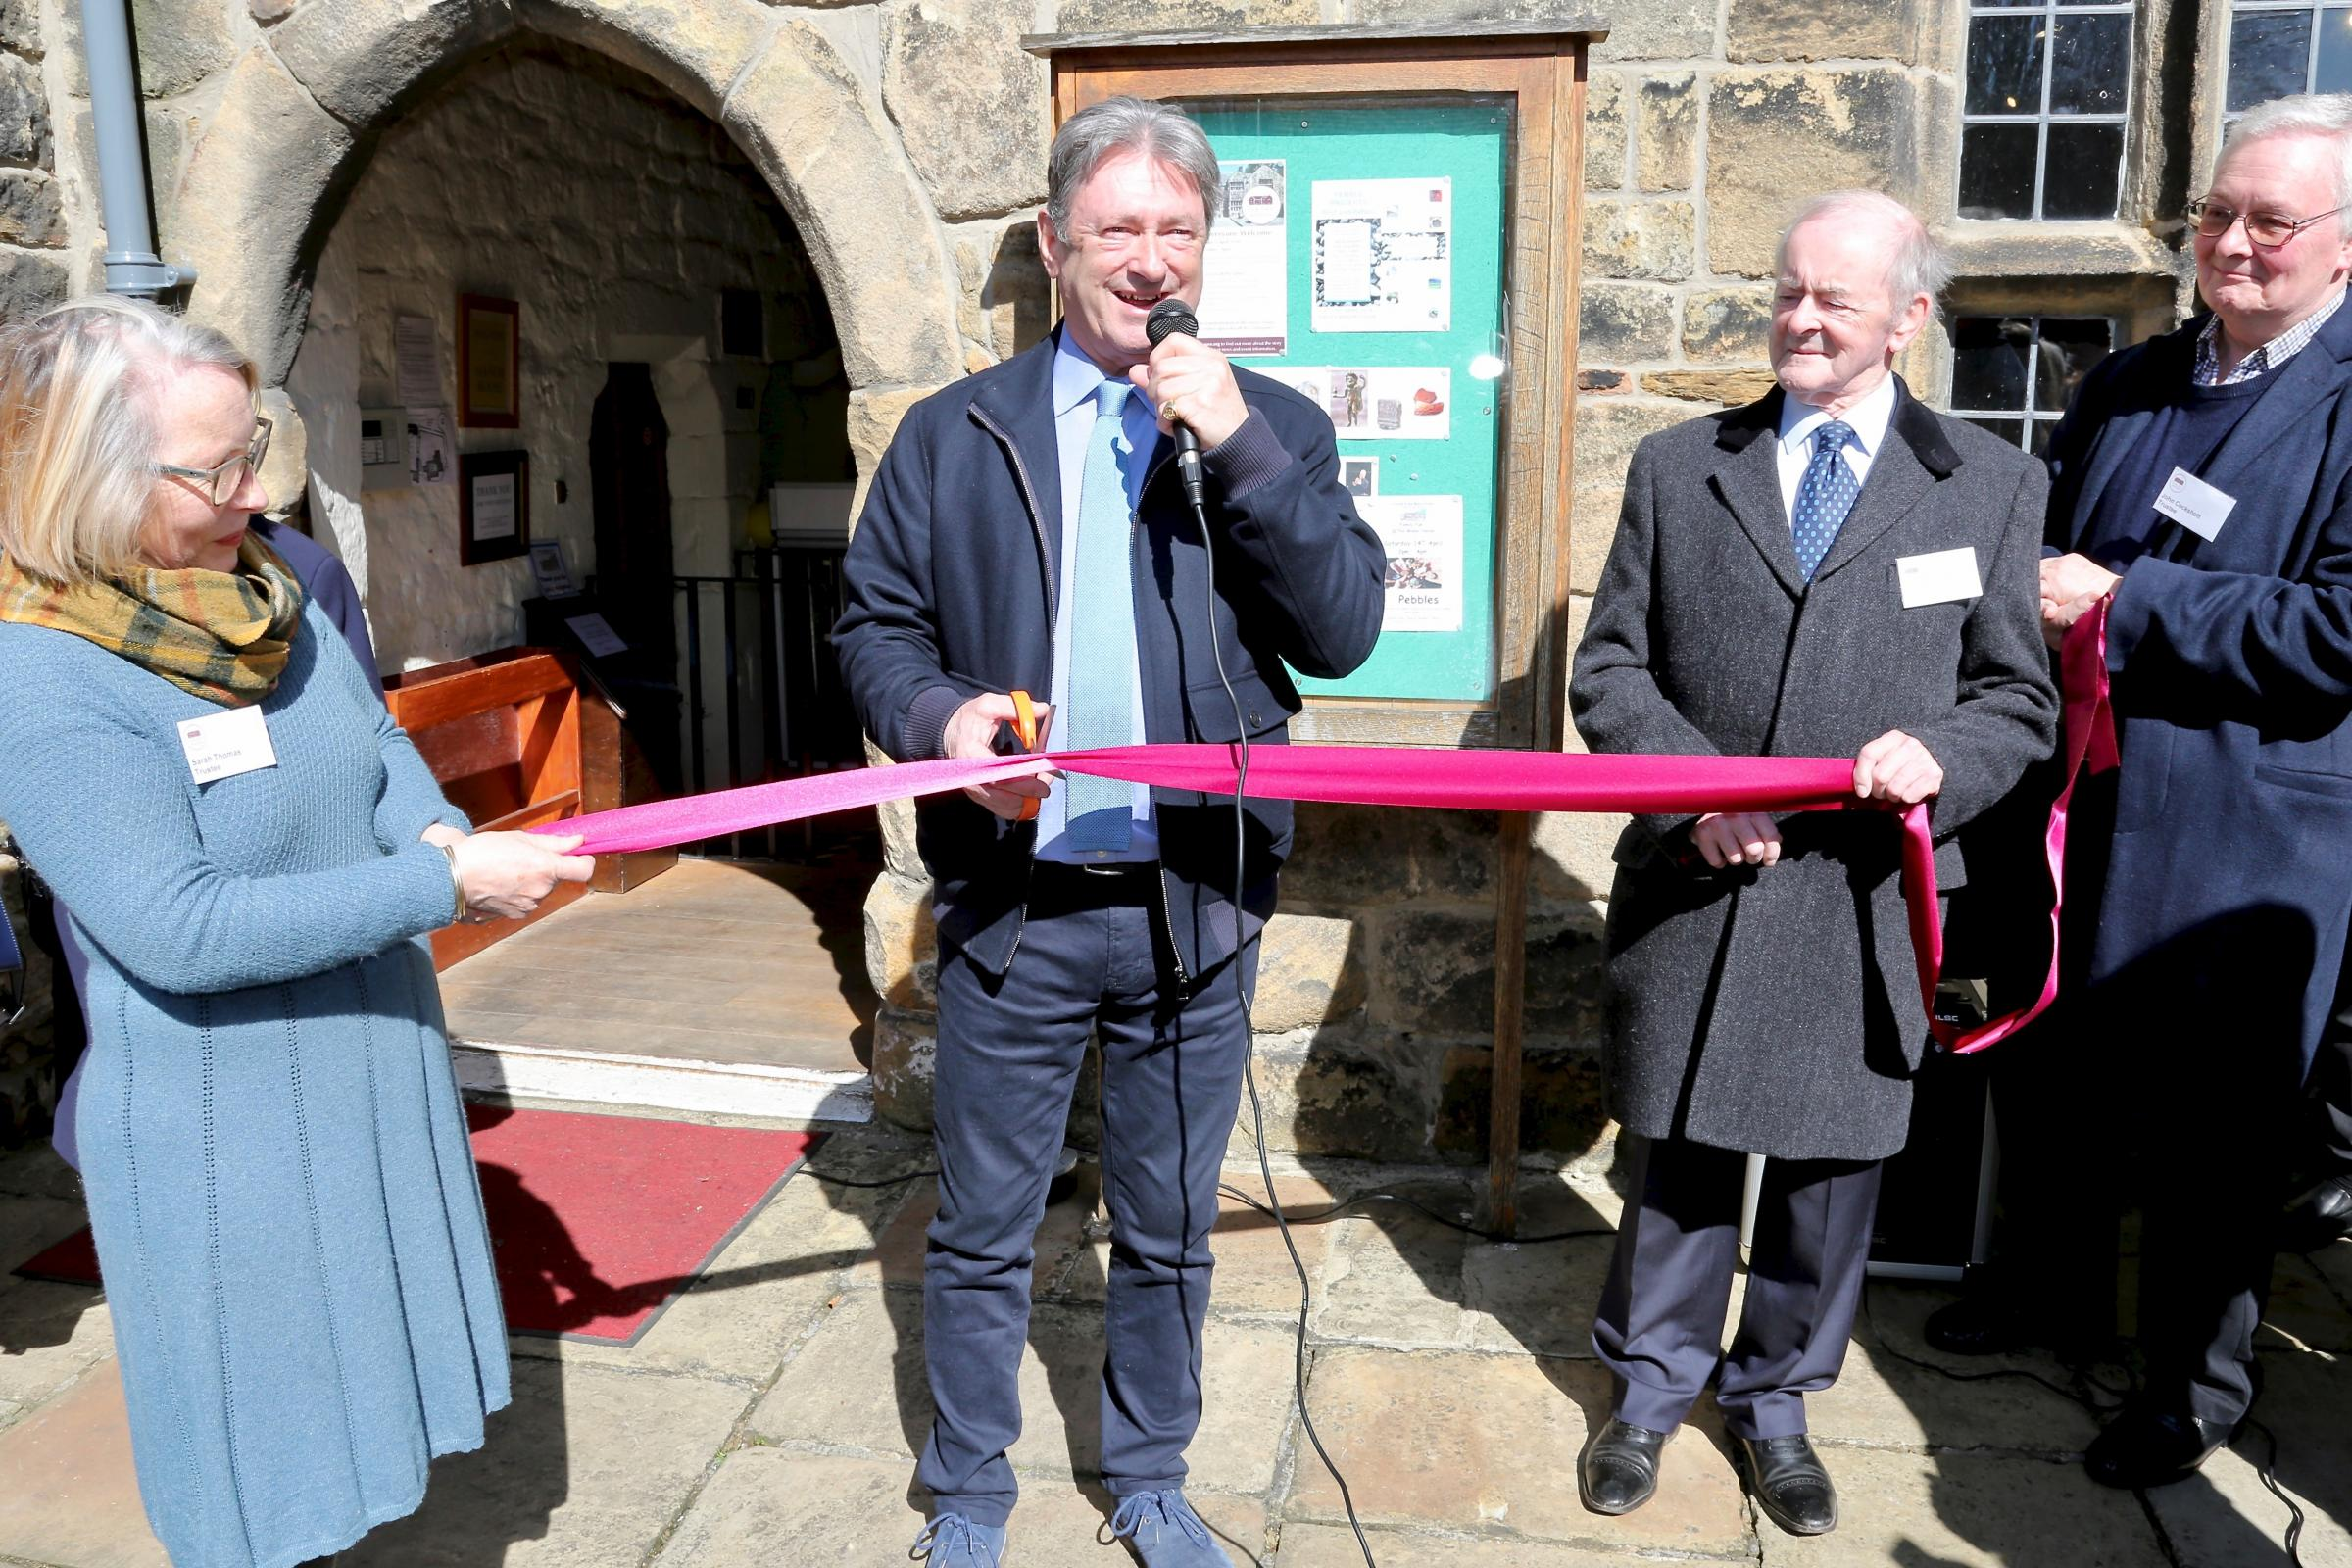 Alan Titchmarsh opens the Manor House. Photograph by Oliver Thomas.